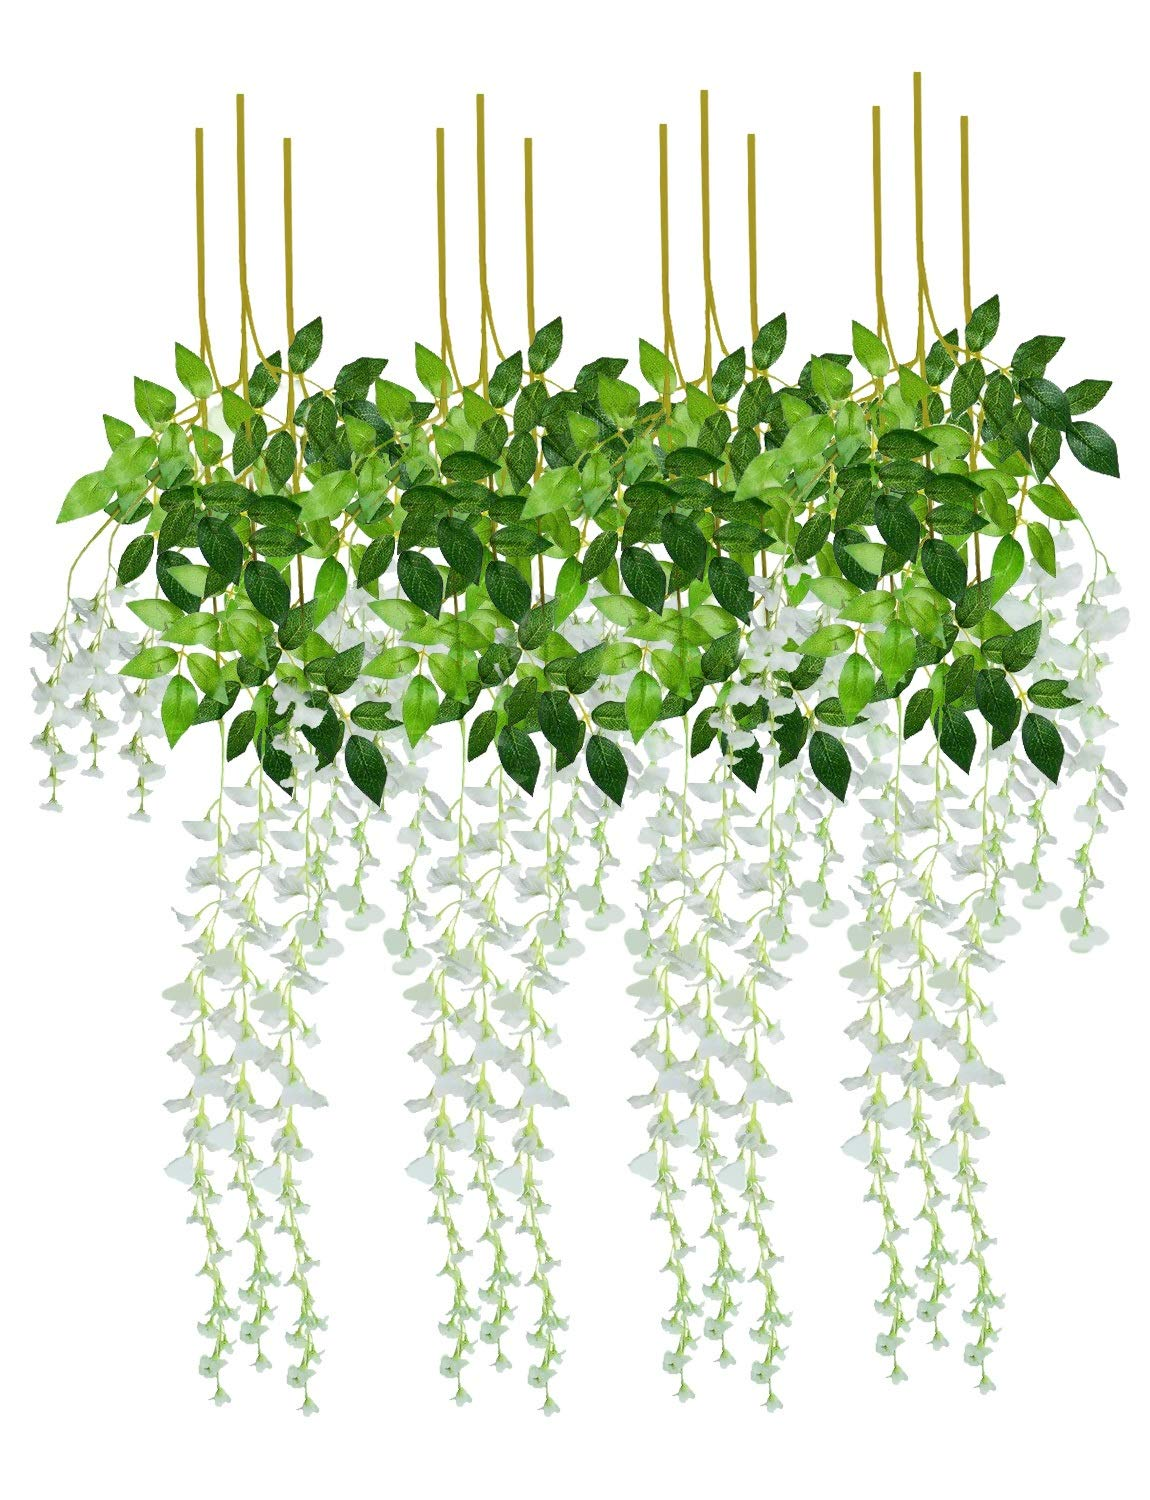 BTSD-home Artificial Fake Wisteria Vine Garland Silk Wisteria Vine Ratta Hanging Flowers for Home Garden Party Wall Wedding Decor, 12 Pieces